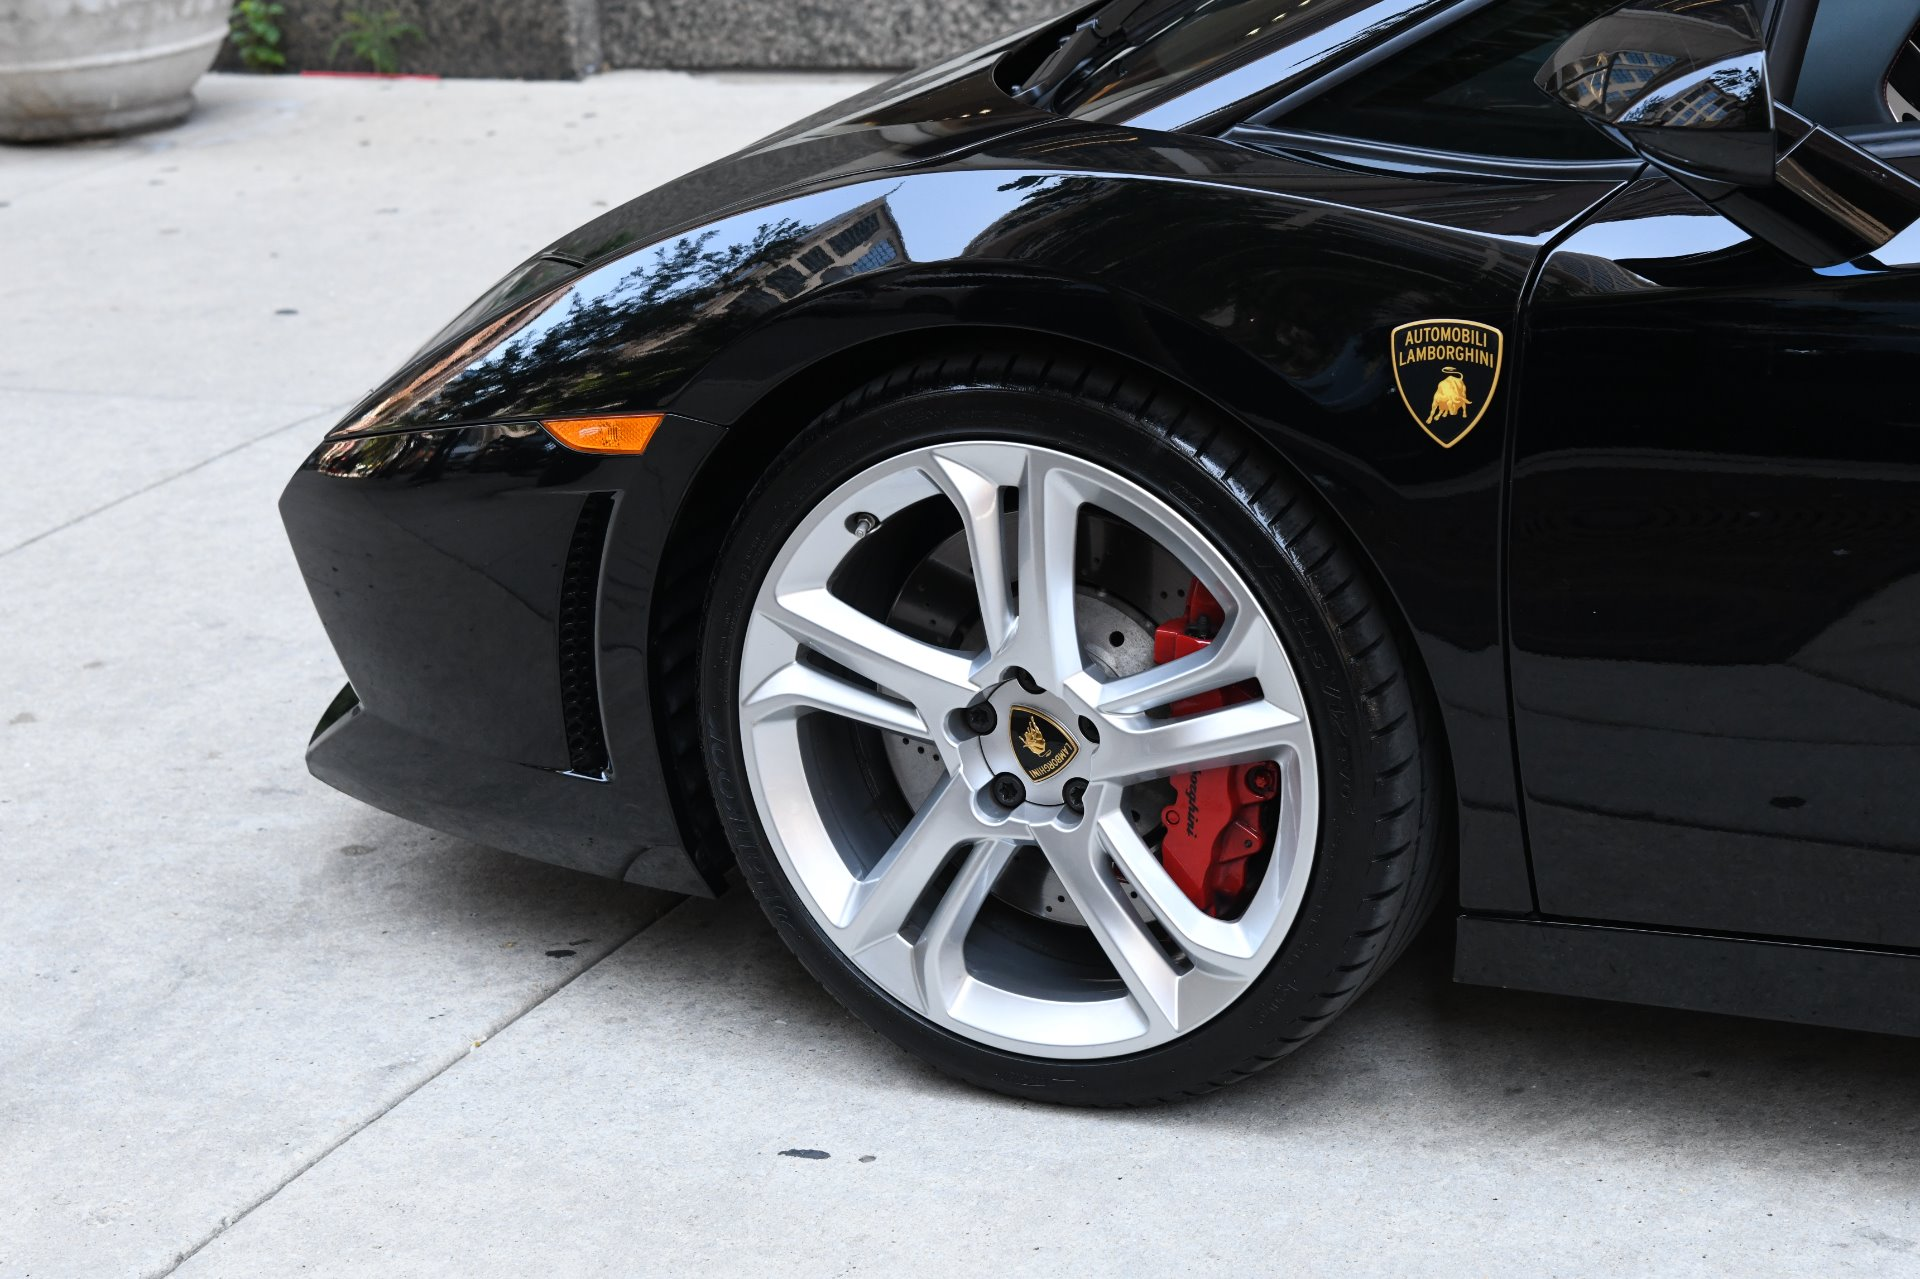 Used 2011 Lamborghini Gallardo Spyder LP 560-4 Spyder | Chicago, IL